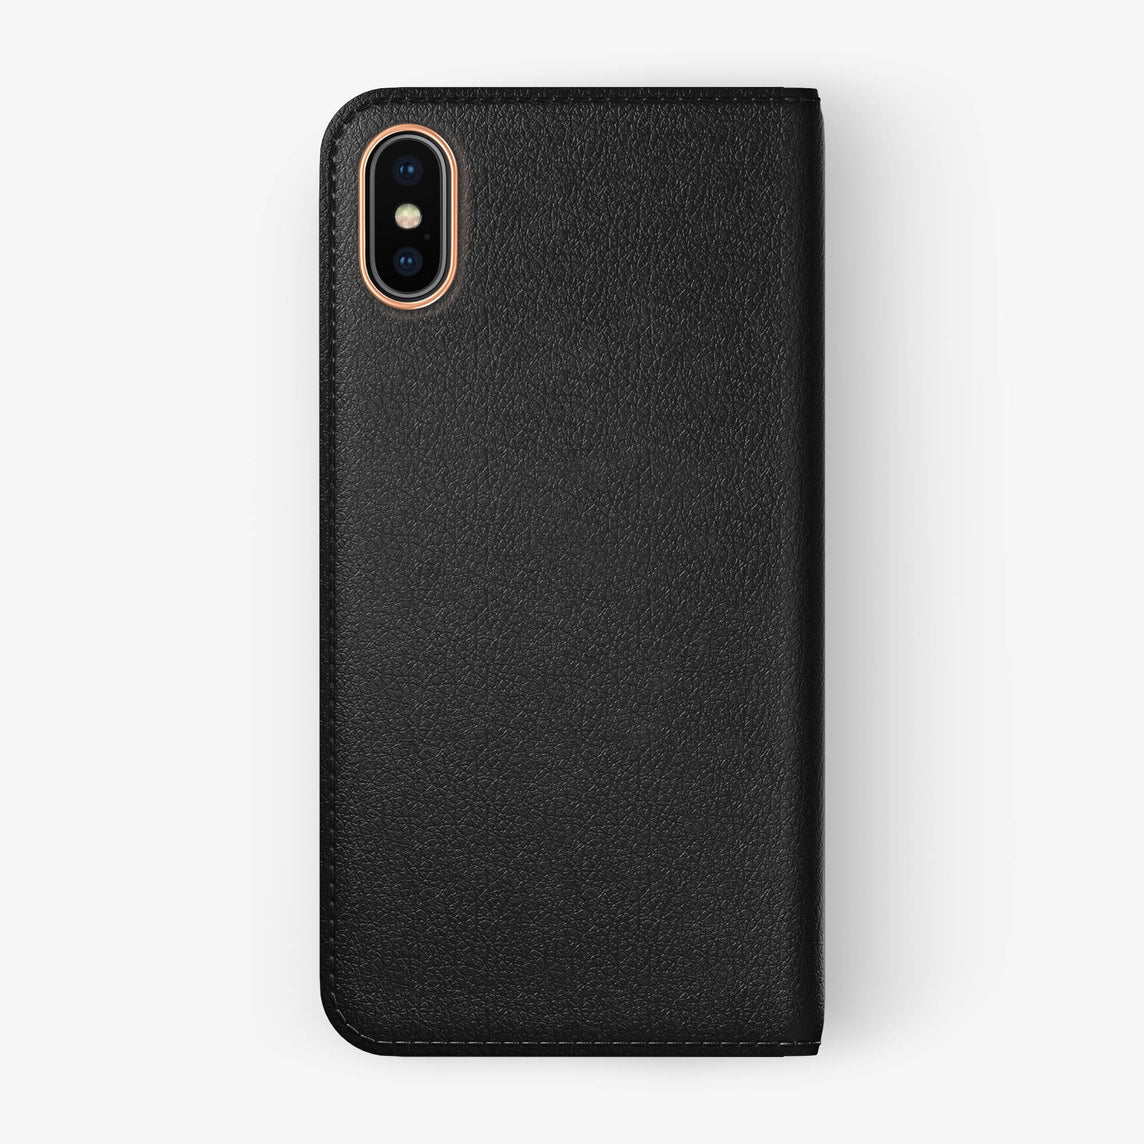 Black Calfskin iPhone Folio Case for iPhone X finishing rose gold - Hadoro Luxury Cases img5